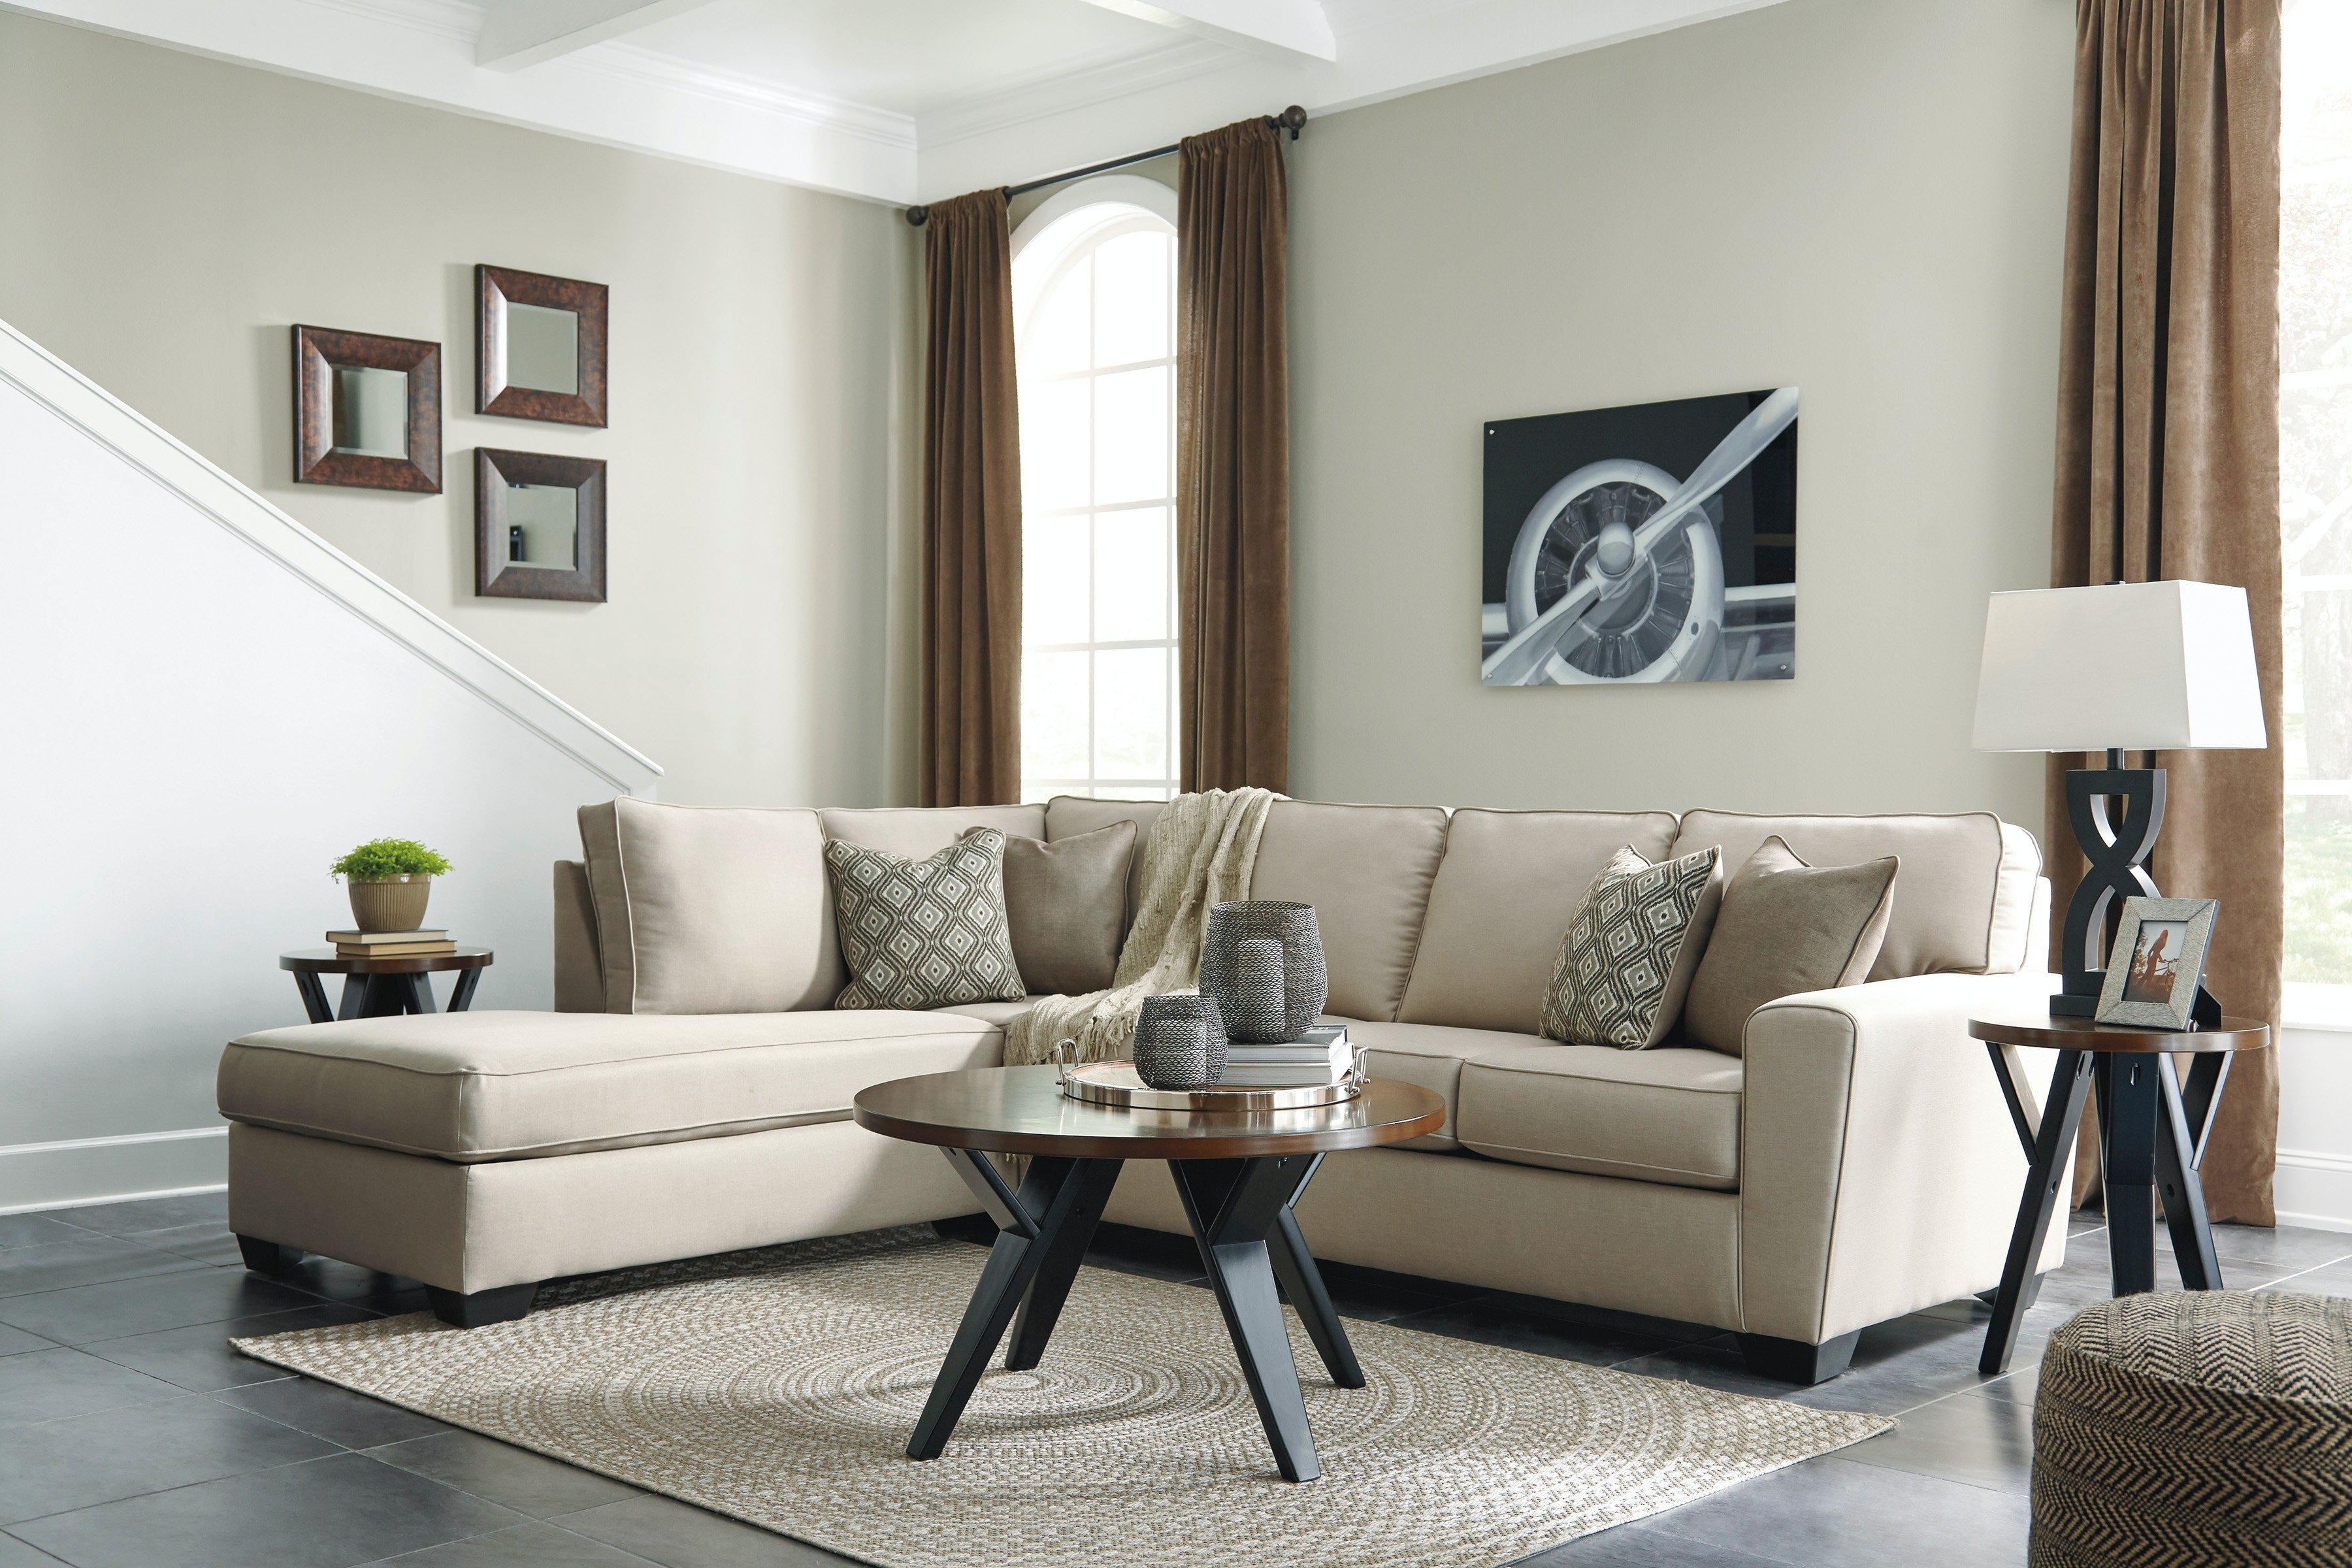 living room package modern wall clocks for 6pc calicho signature design by ashley 91203 16 67 t267